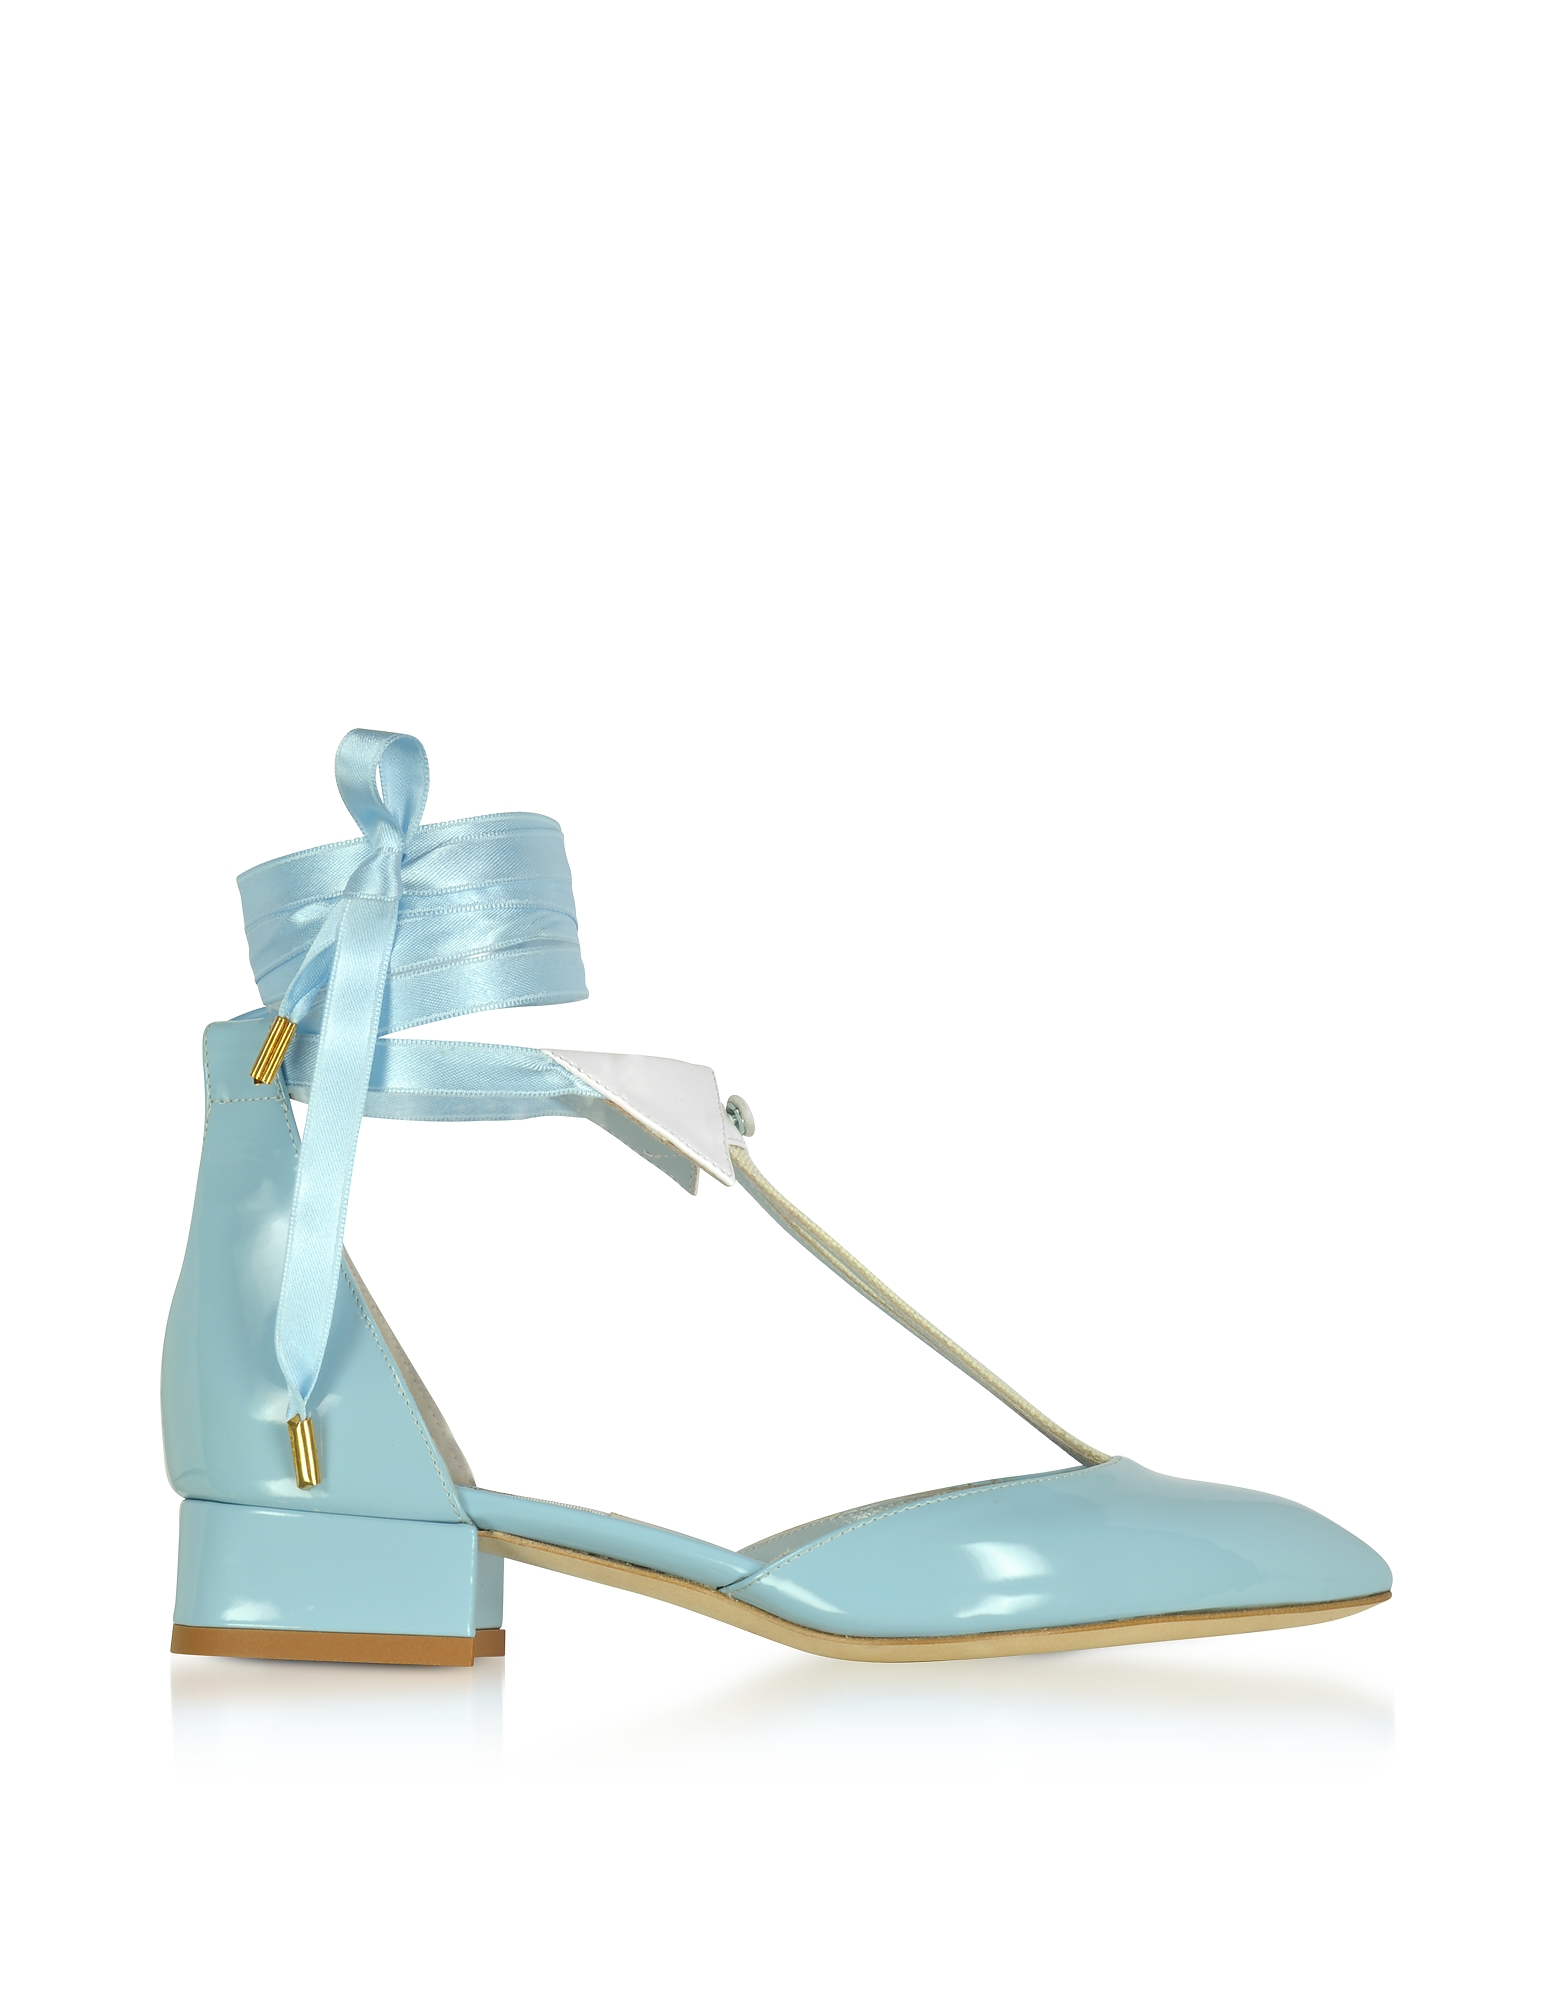 Olgana Paris Shoes, L'Ideal Baby Blue Patent Leather Mid-Heel Pump